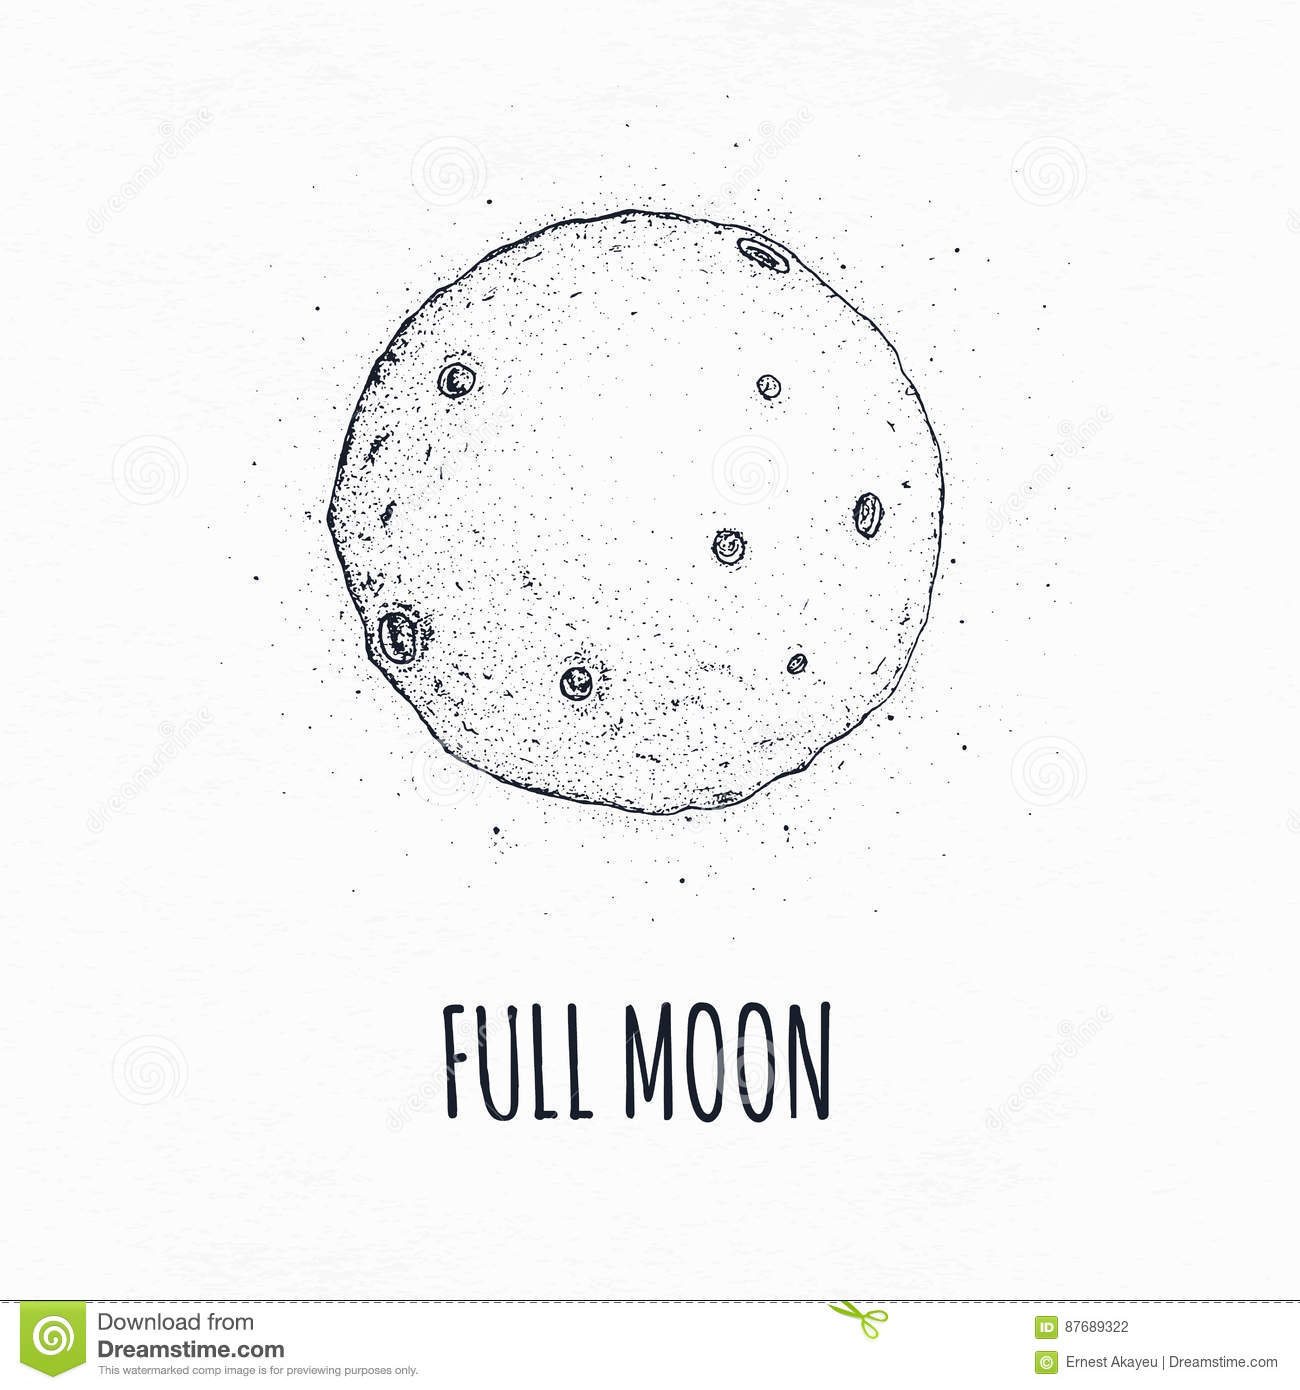 Full Moon Drawing Black And White Full Moon In Outer Space With Lunar Craters Logo Hand Drawn